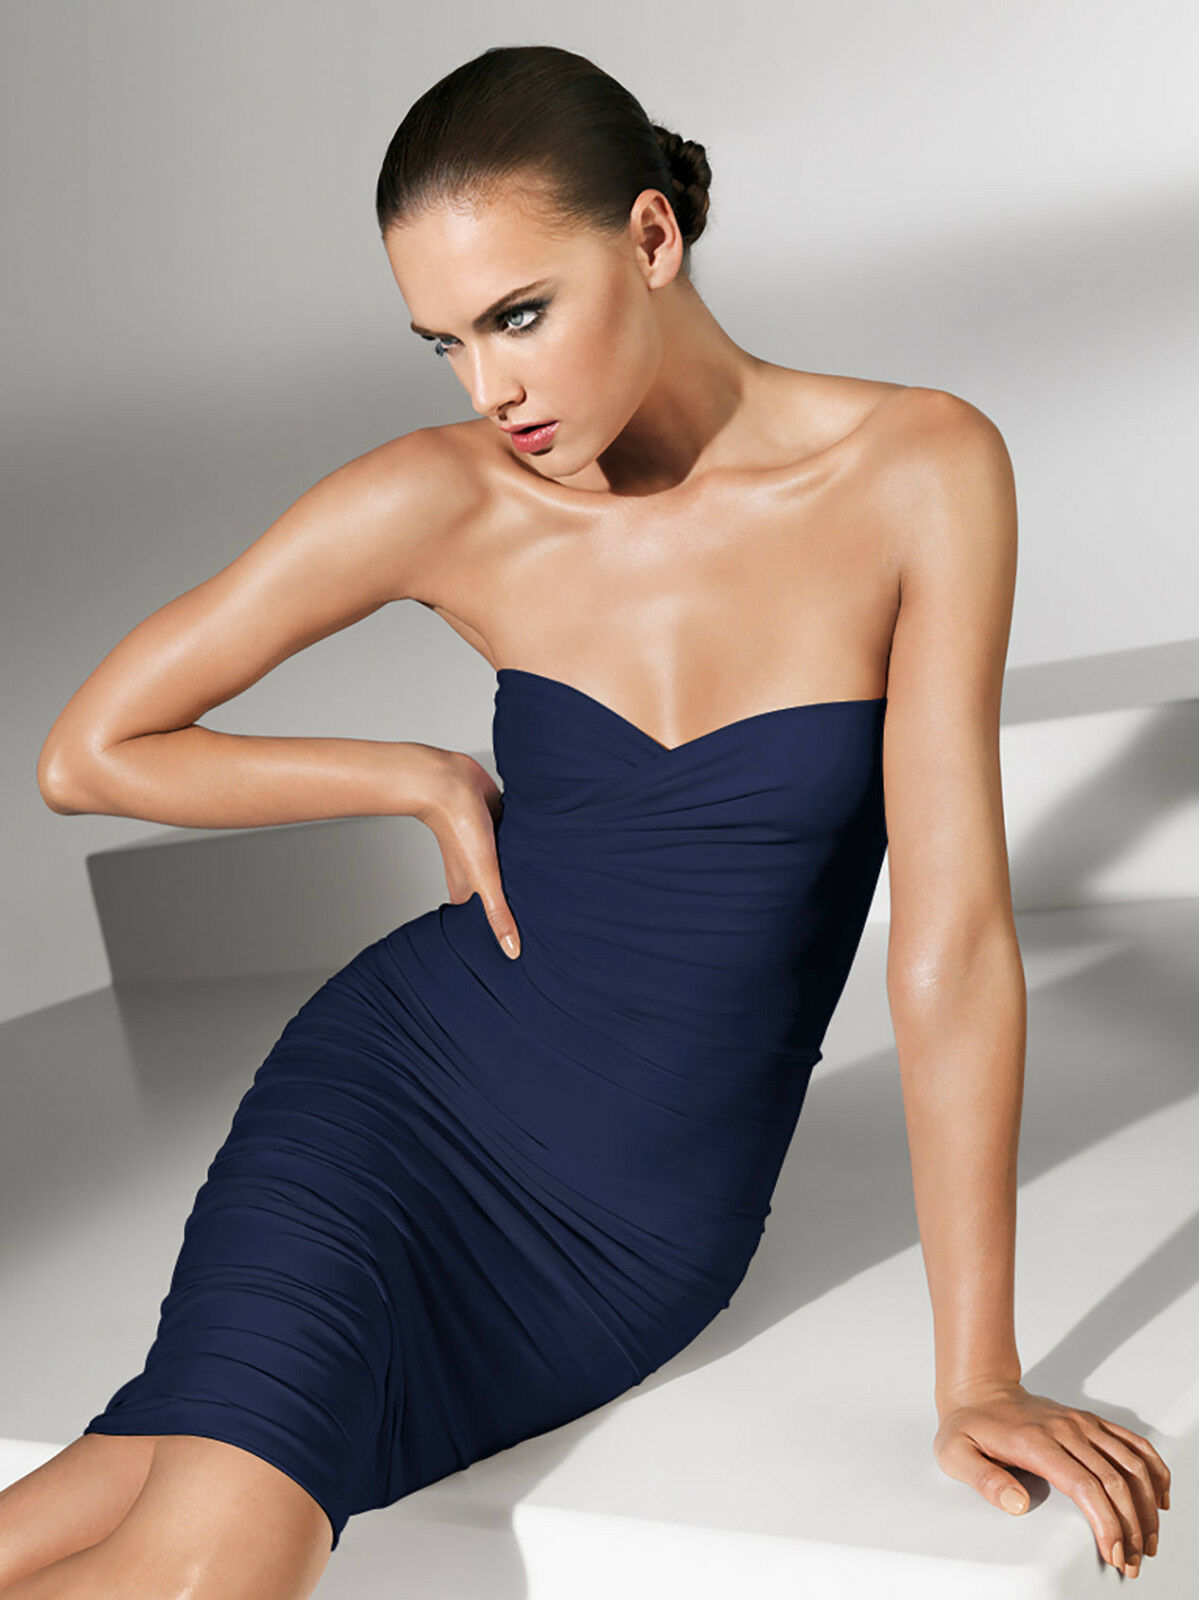 Wolford Fatal dress dress dress  M  Navy  OVP... molto variabile come abito gonna O TOP 868e3f